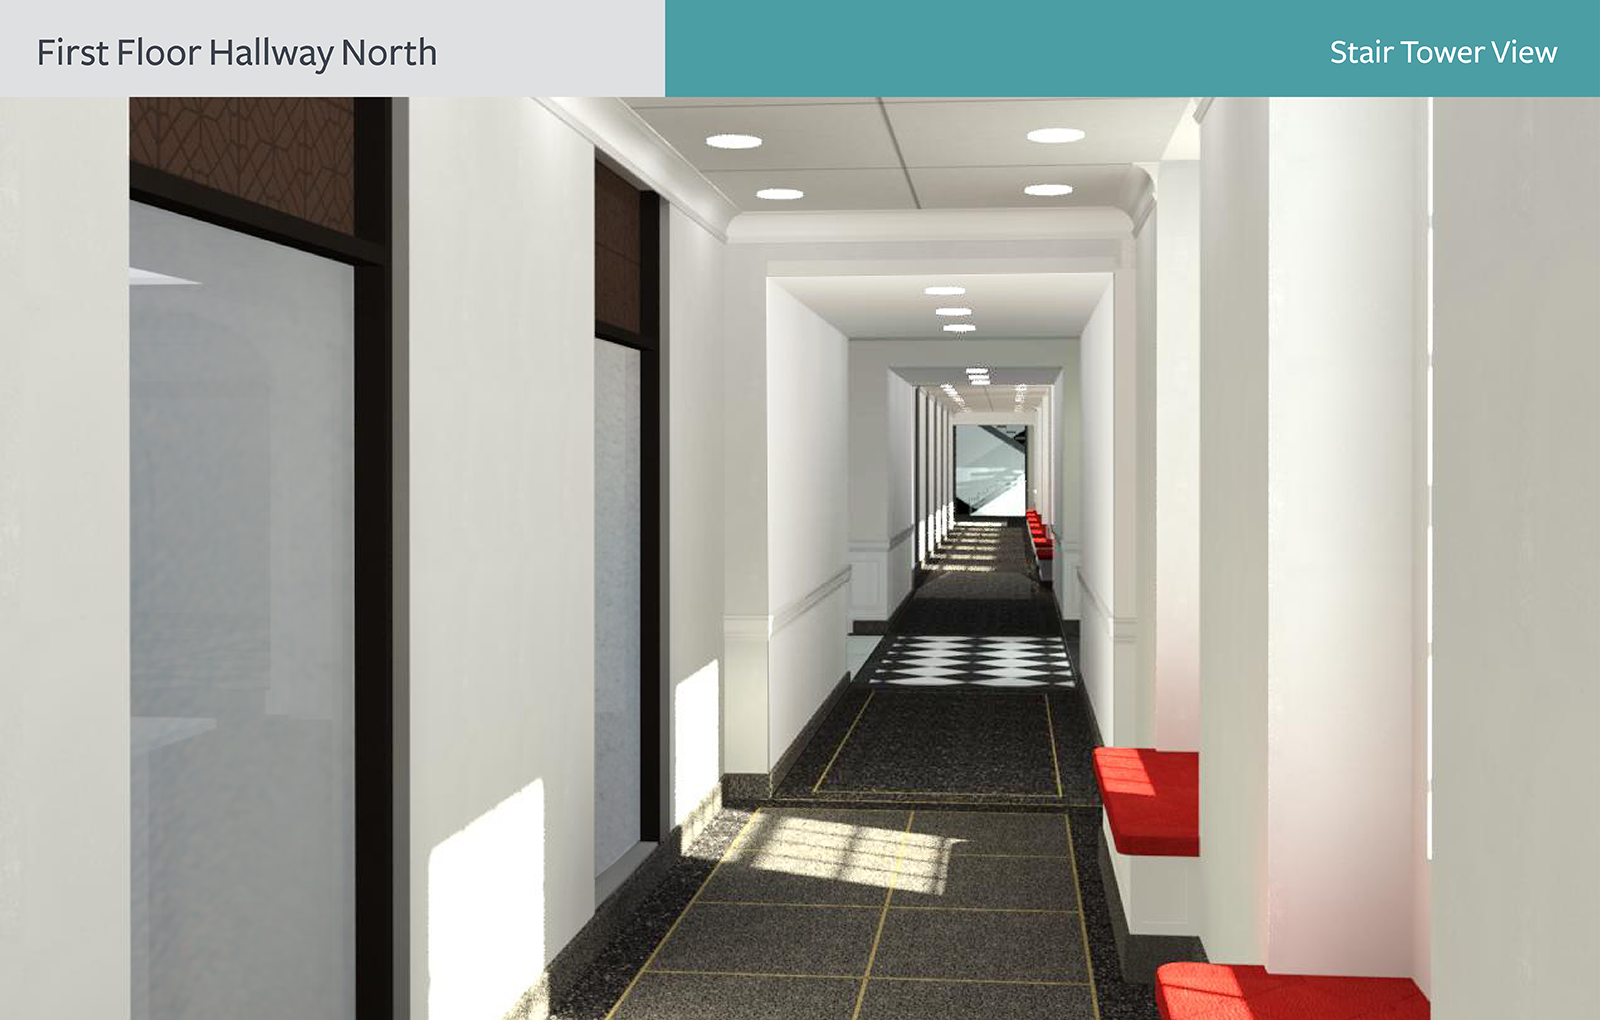 The rendering of First Floor Hallway North from the Stair Tower view